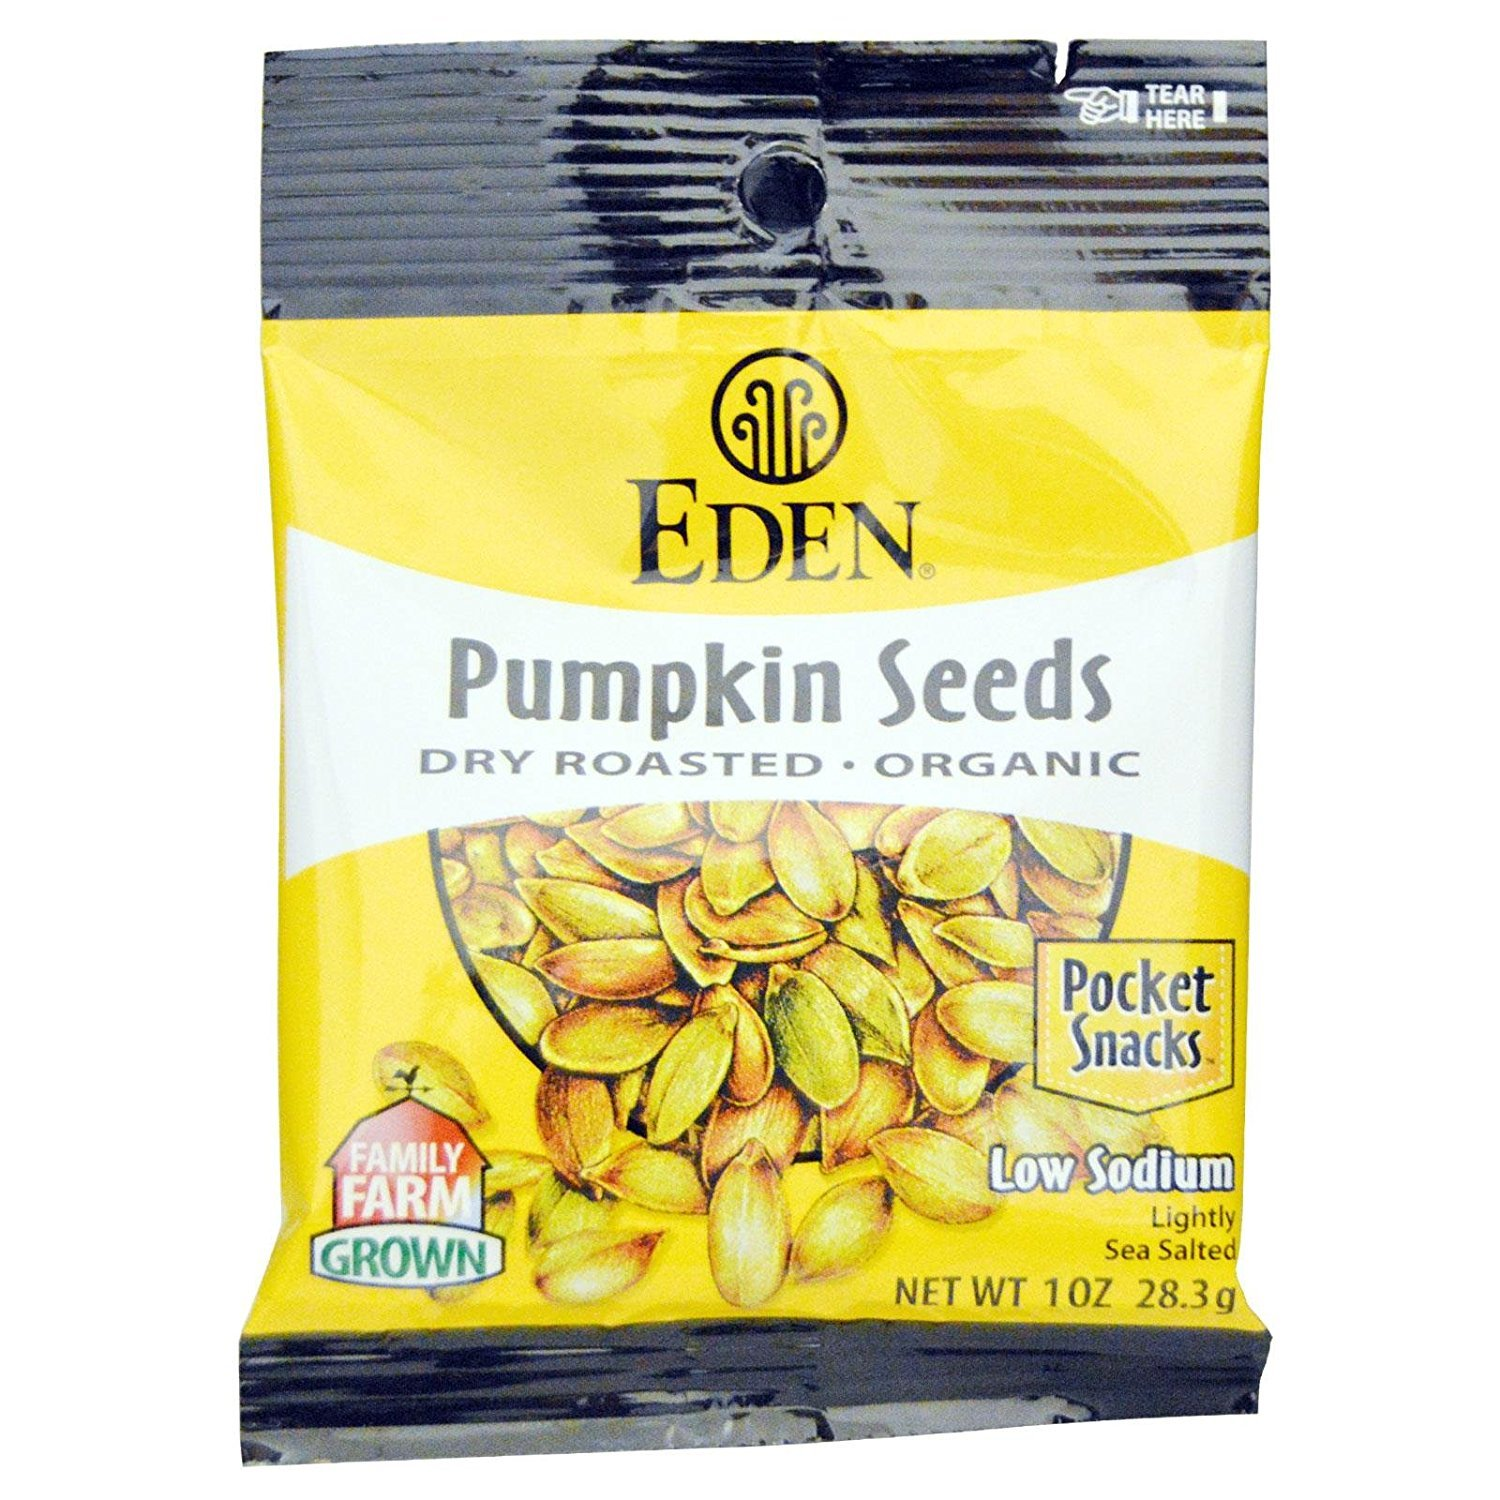 Eden Organic Pumpkin Seeds, Dry Roasted and Salted, Pocket Snacks, 1 Ounce (Pack - 24) by Eden